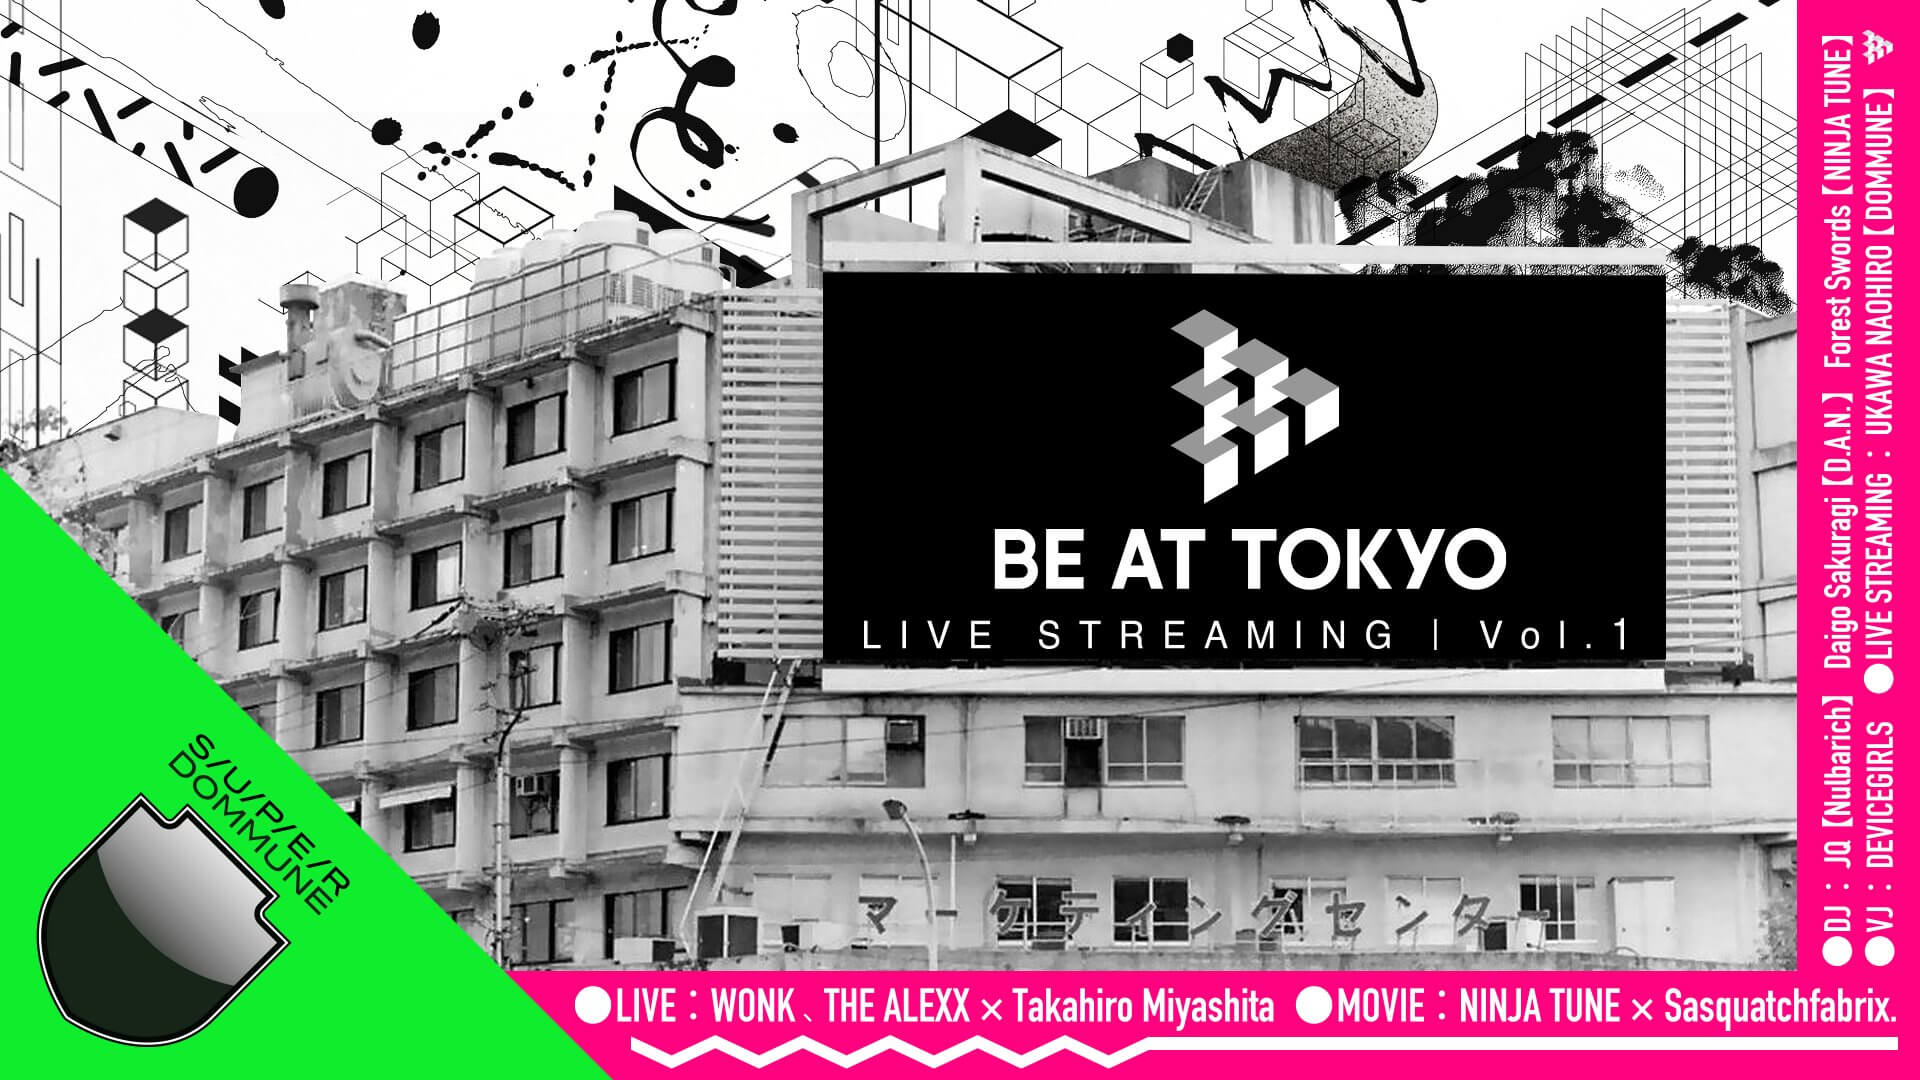 Forest Swords × Sasquatchfabrix.、WONK、THE ALEXXらが登場。BE AT TOKYO LIVE STREAMING Vol.1がDOMMUNEより配信決定 music201224-be-at-tokyo-0